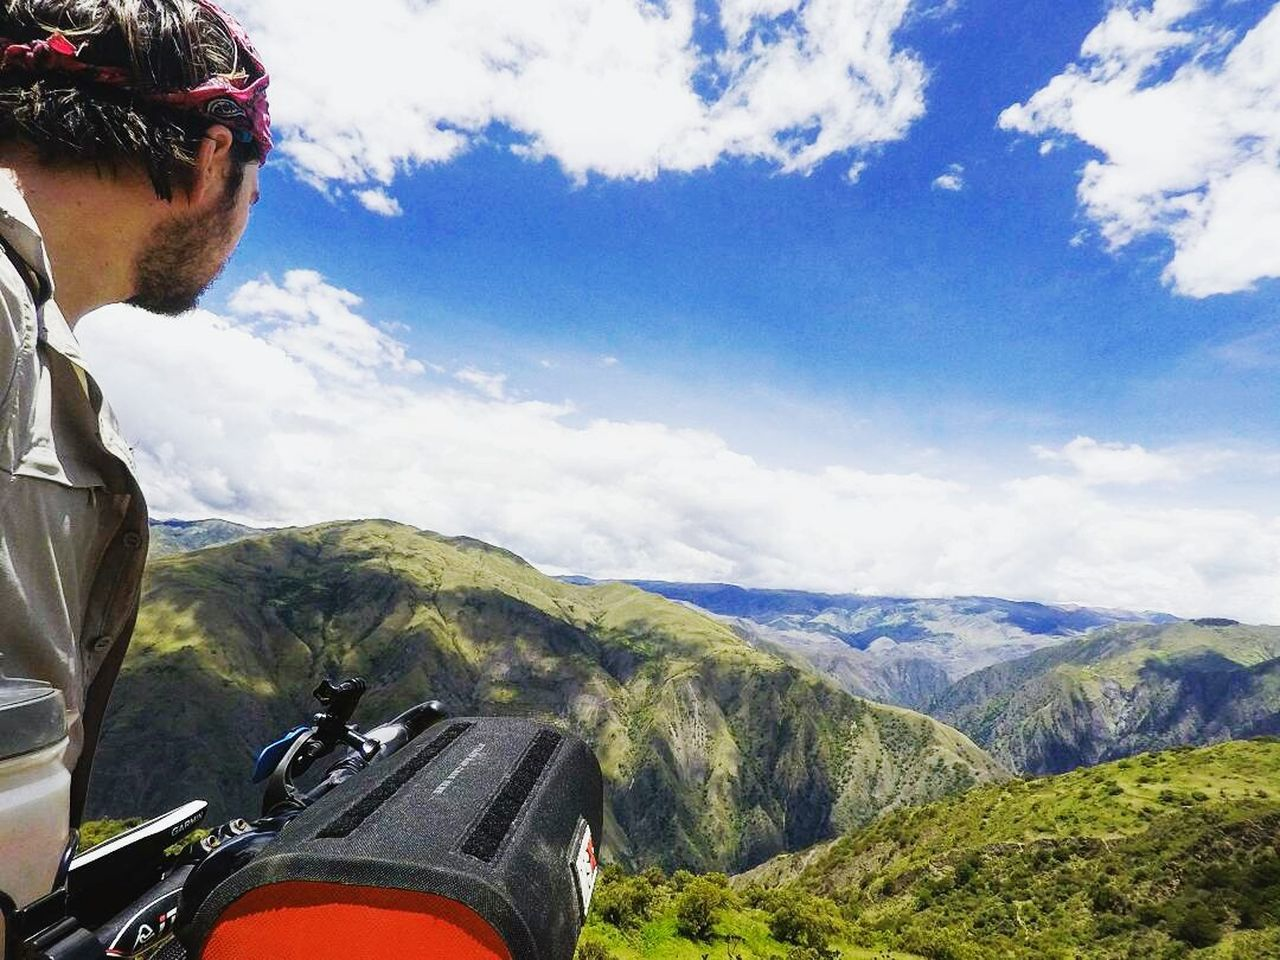 Chris overlooking a beautiful vista in Peru : Sky Mountain Mountain Range Landscape Cloud - Sky Travel Destinations Adventure Outdoors Beauty In Nature Scenics Peru Travel Photography Travel The World EyeEmNewHere Latin America Bikesaroundtheworld Biketrip Biketouring Journey Camping Travel Vista Landscape_Collection Landscape_photography Natural Beauty EyeEmNewHere